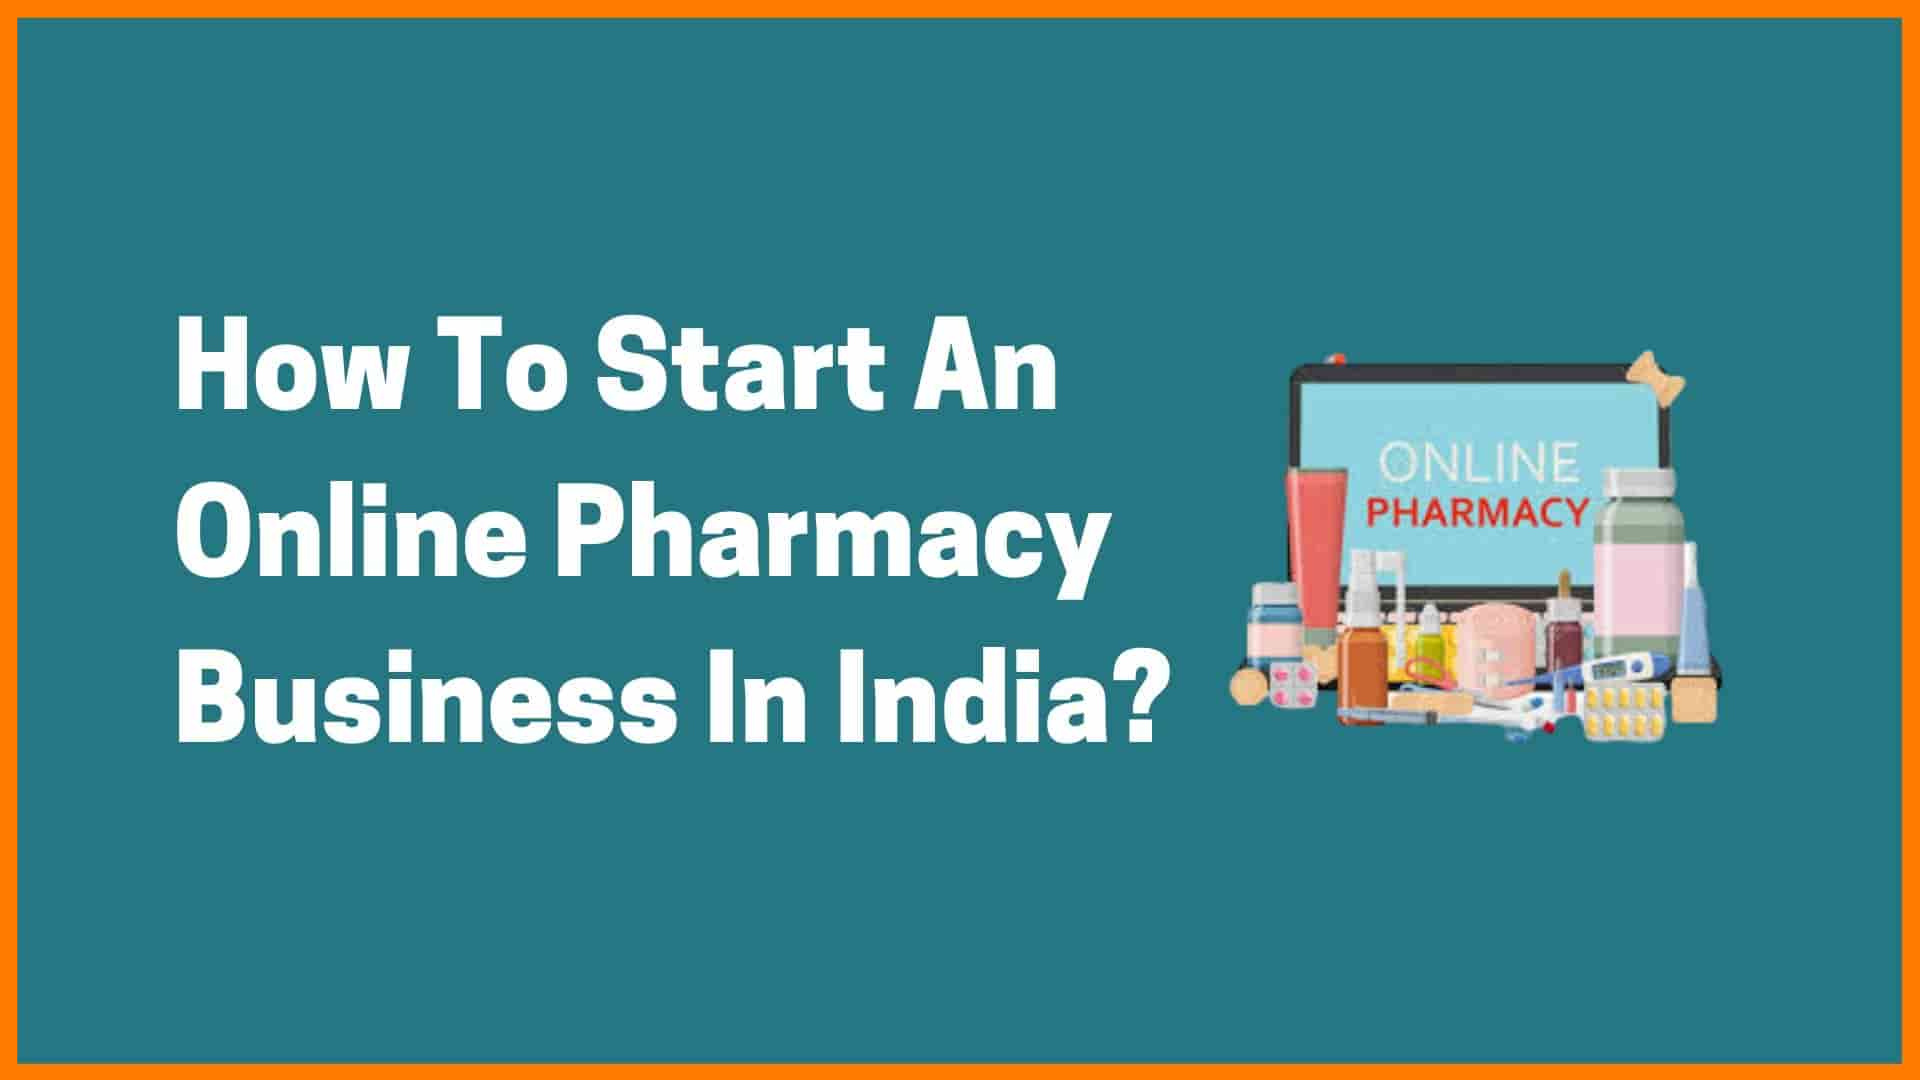 How To Start An Online Pharmacy Business In India? | Growth And Future Of E-Pharmacy In India